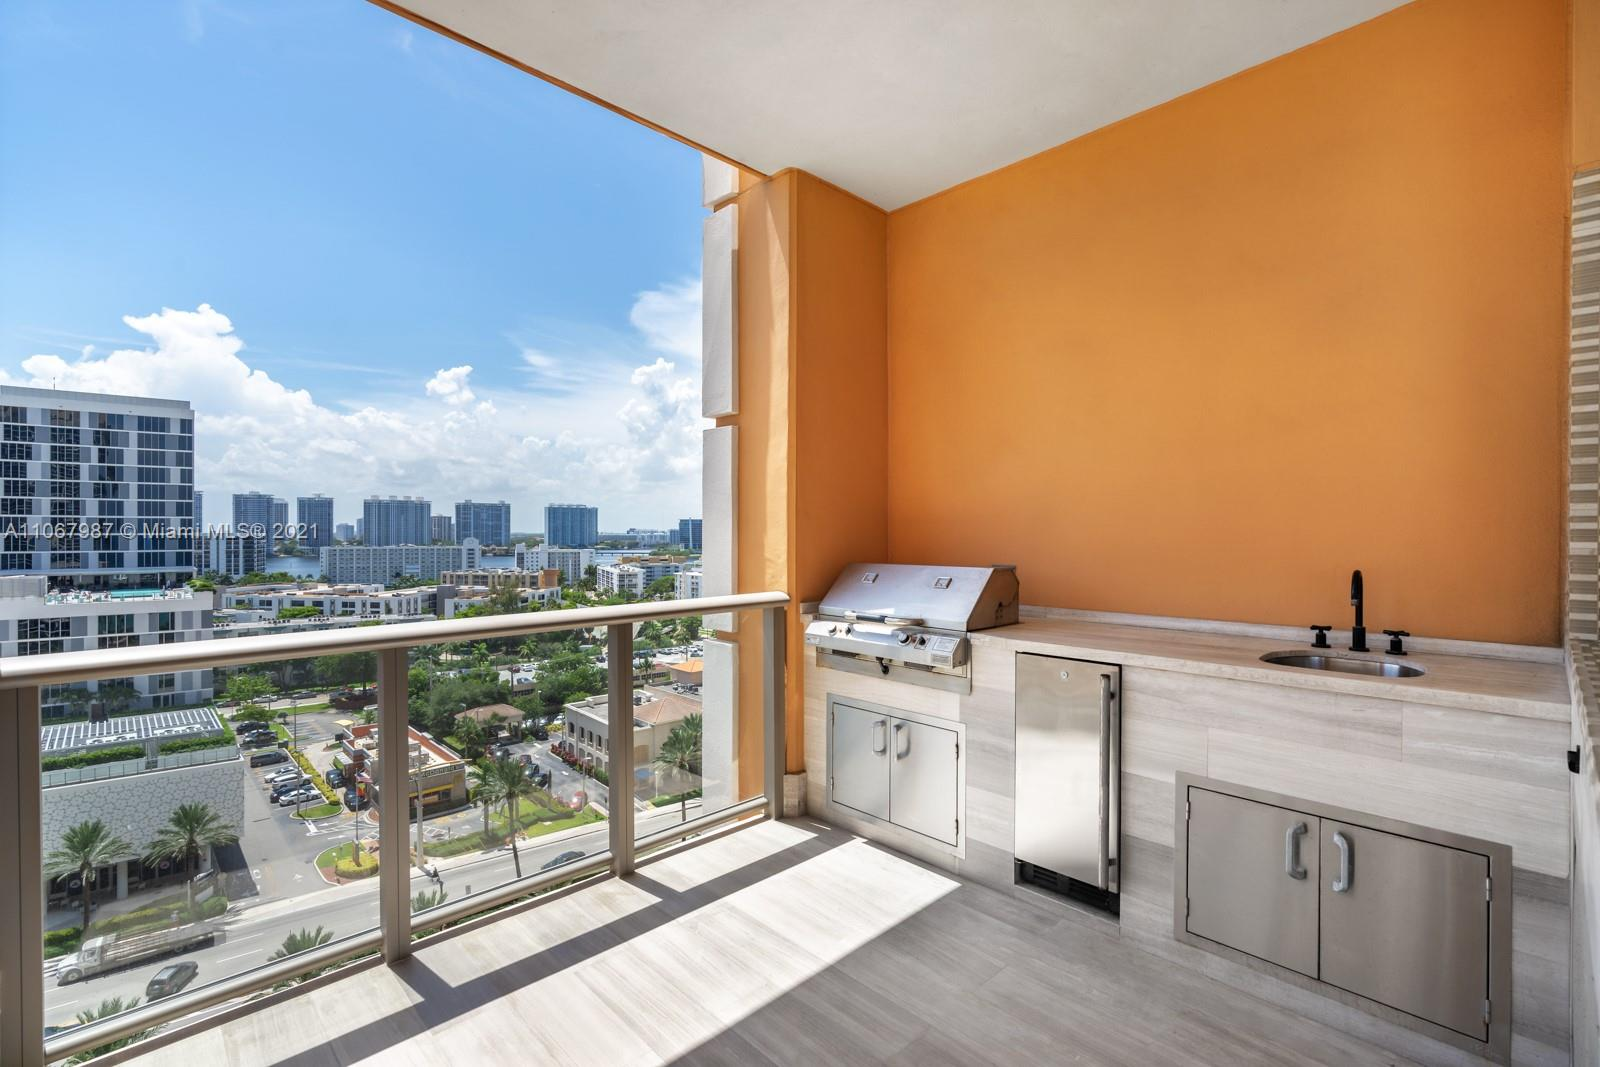 """Exceptional 3 bd, 6.5 ba residence in Sunny Isle's sophisticated oceanfront condo development, Mansions at Acqualina. The impressive unit feats. spectacular views of the ocean from the expansive balcony, living spaces and master bed. Master his & her spa-inspired baths. Kitchen is equipped with marble countertops, Miele appliances, and wine cellar. The stylish living room with fireplace leads to the balcony bbq grill and jacuzzi. The Mansions at Acqualina, situated on the pristine white sands of Sunny Isles Beach, offers oceanfront luxury living at its finest. The affluent complex offers unparalleled amenities incl. 2 oceanfront pools, poolside private cabanas, 16,000 sq ft state-of-the-art fitness center, """"grand salon"""" with catering kitchen and bar, full-service wellness spa and more."""